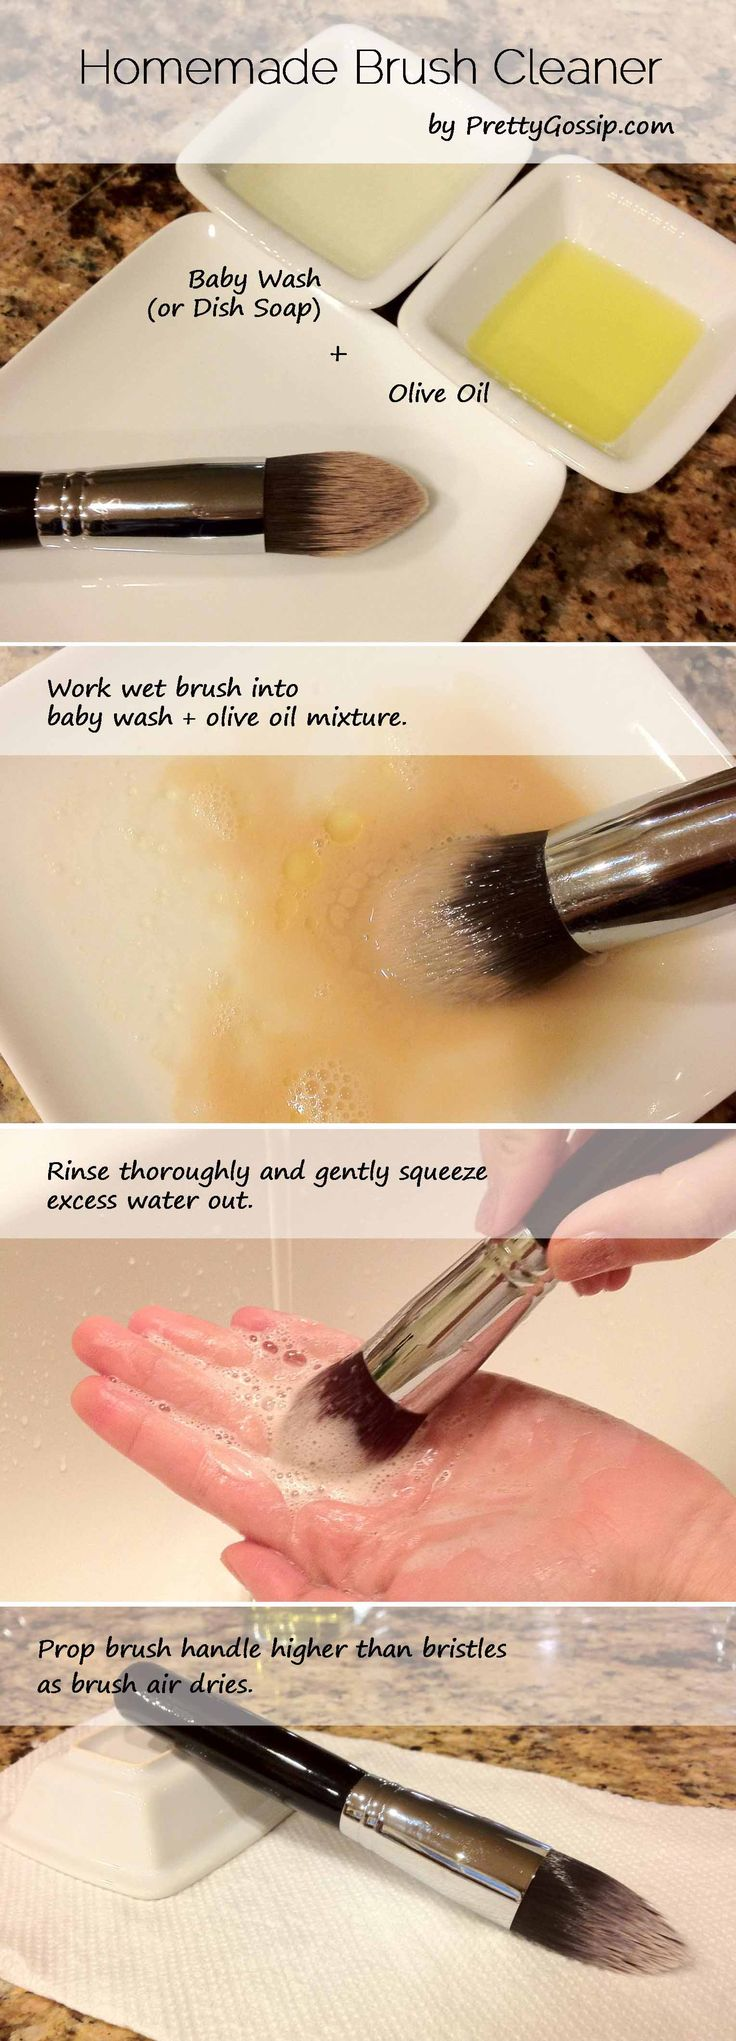 Makeup brush cleaner. This really is a great way to clean your brushes. I did this with mine and they feel soft and like new. I love this! :)